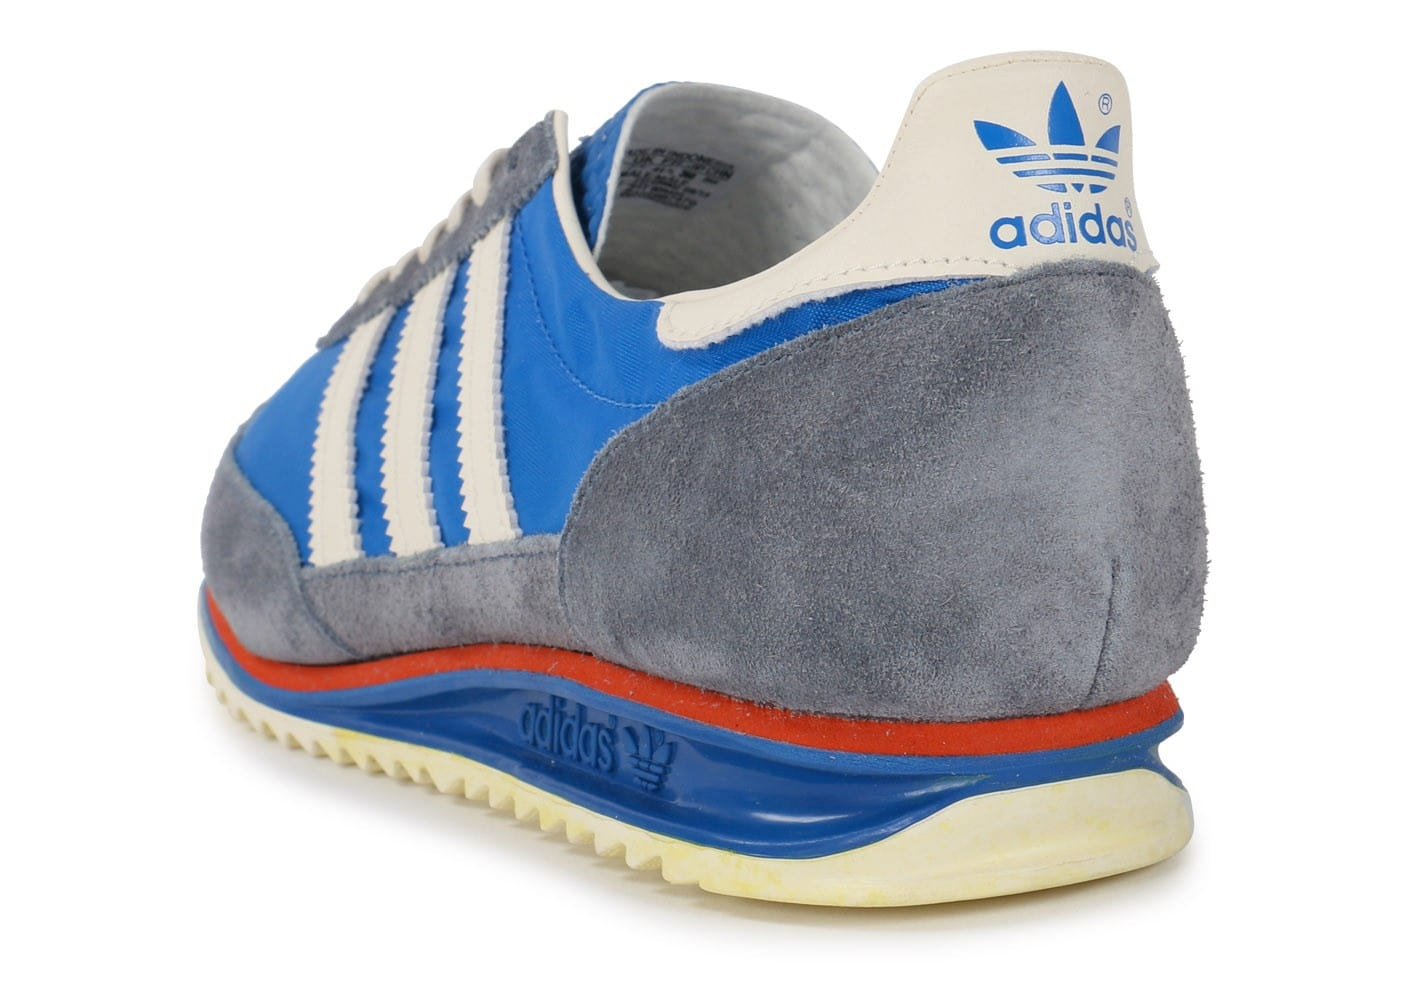 adidas sl 72 homme, OFF 73%,Cheap price !